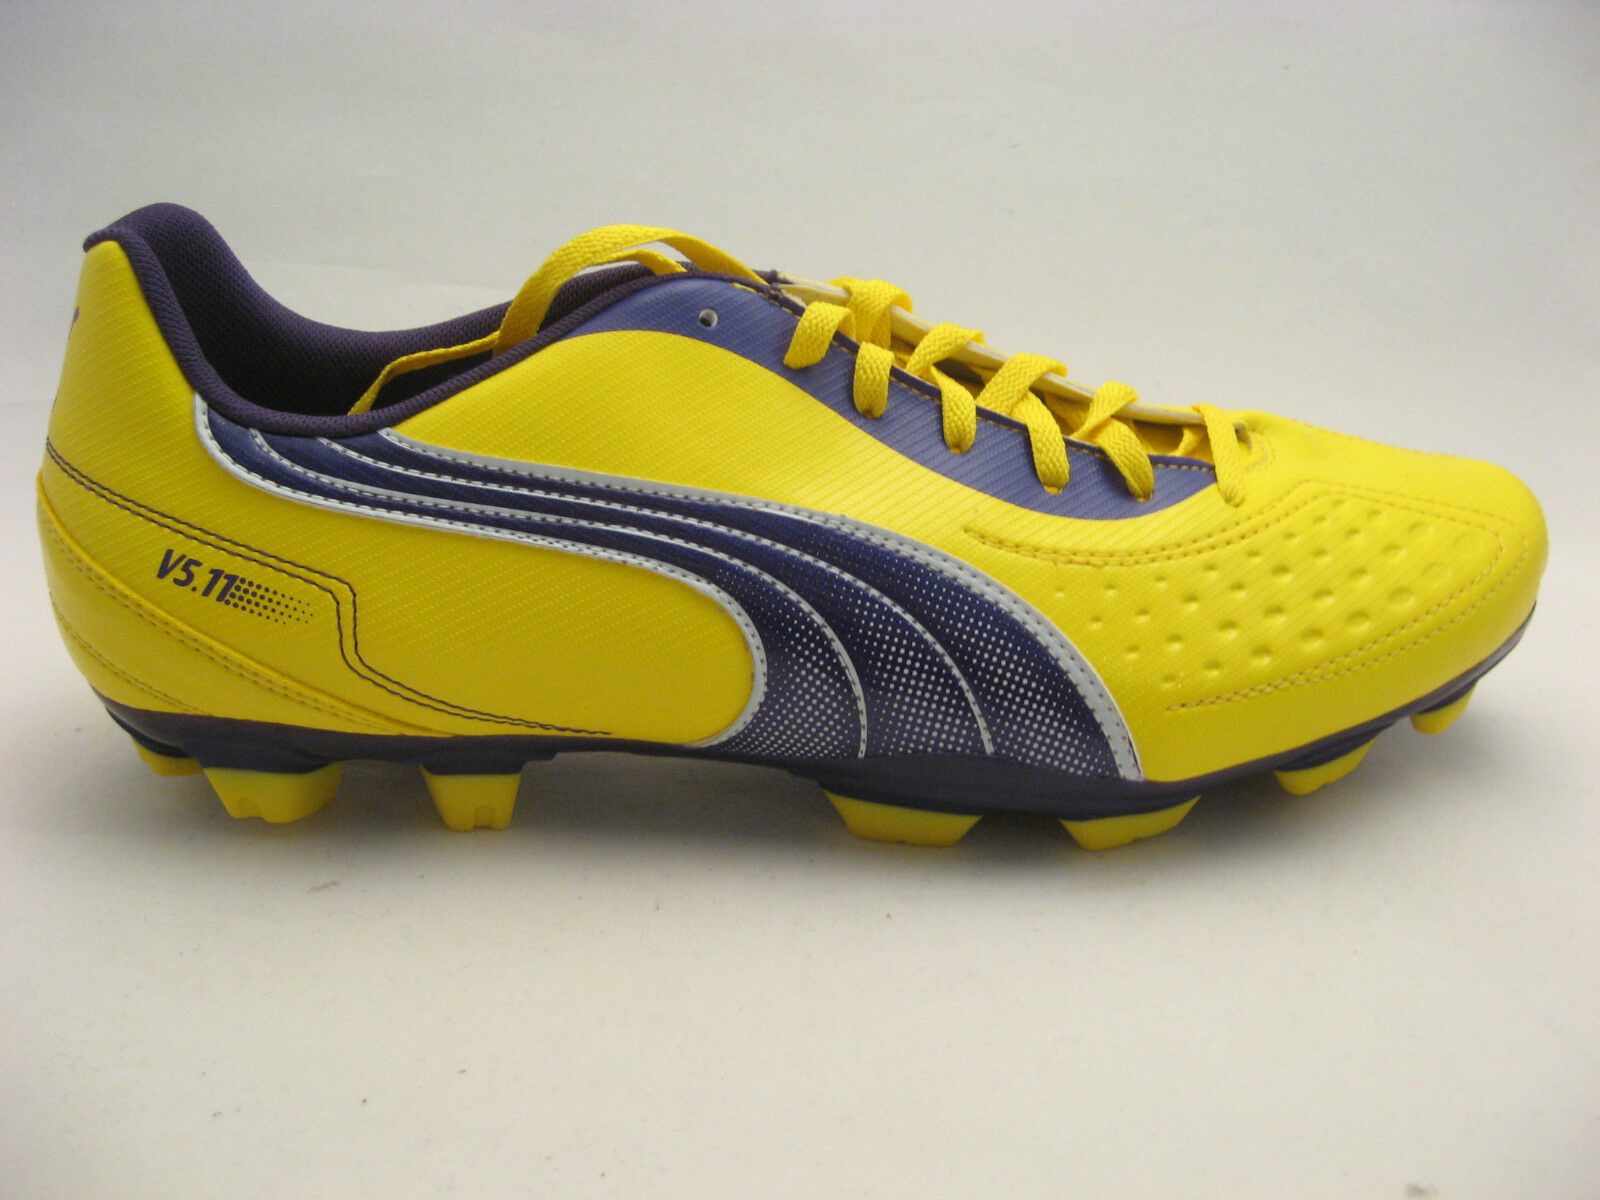 Puma Uomo Soccer Cleats 11.5 Vibrant Yellow V5.11 I FG Purple #102337 NEW Futbol